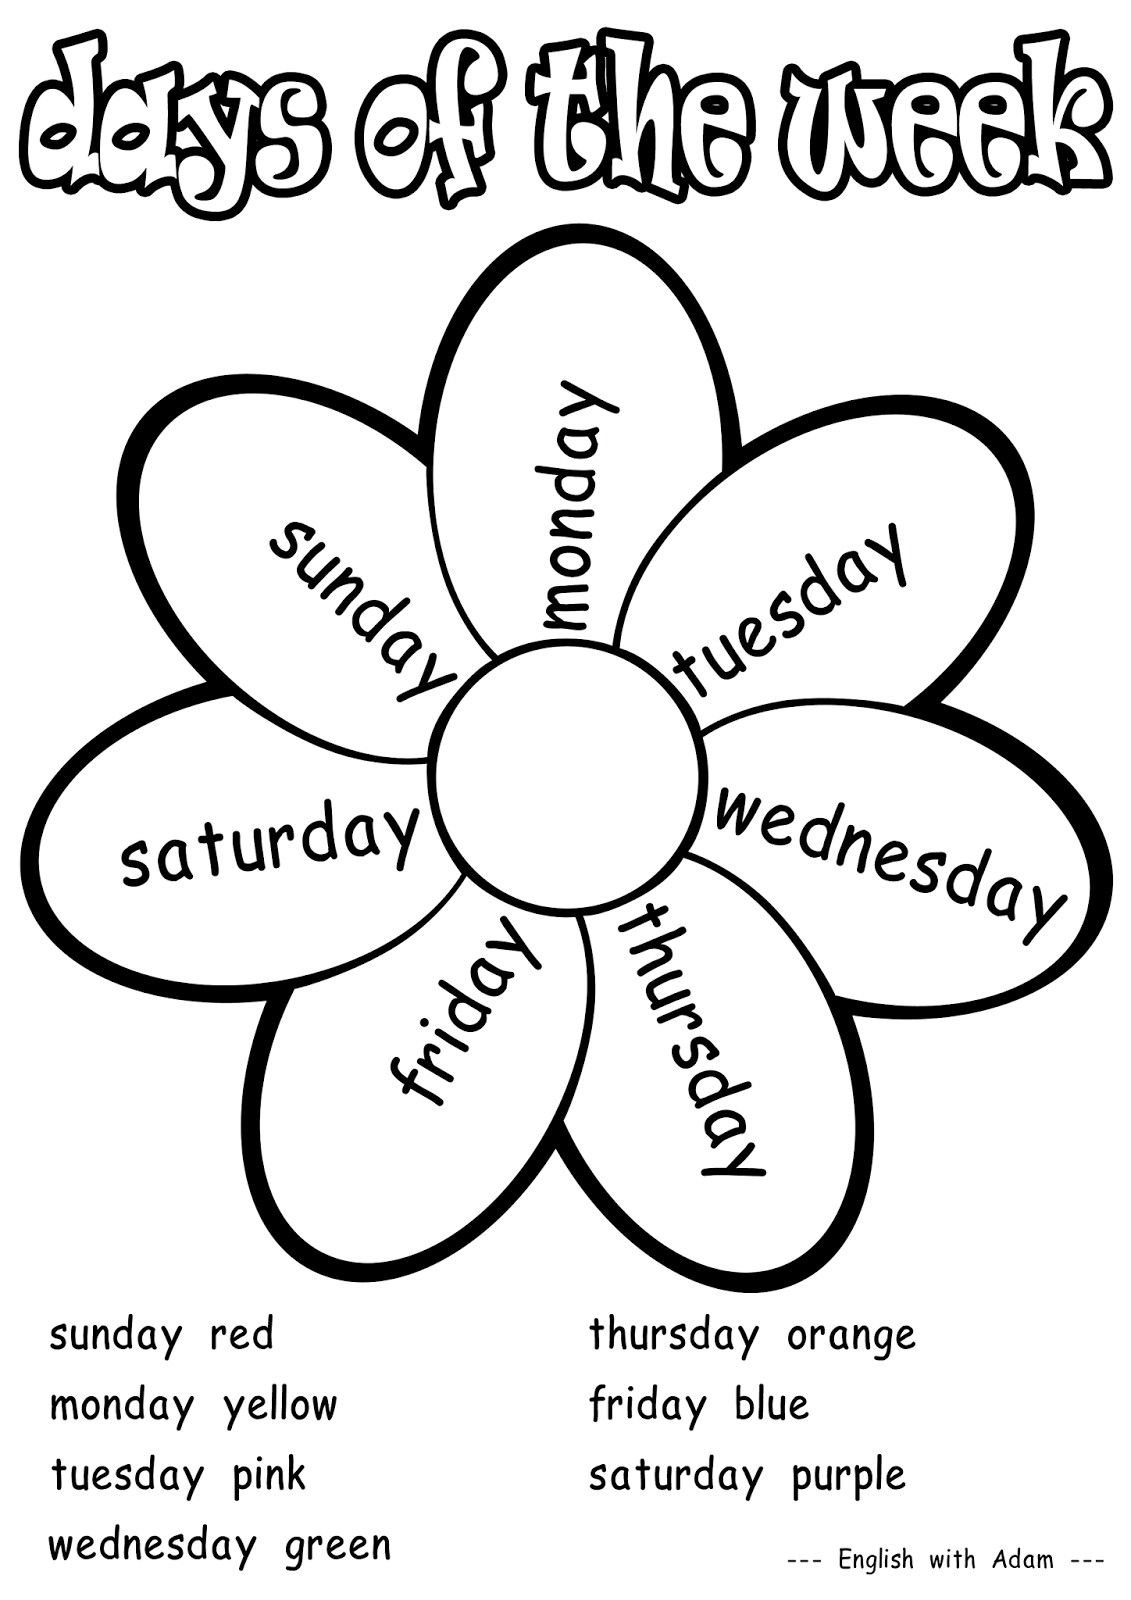 Days of the week | Worksheets in 2018 | Pinterest | English, School ...